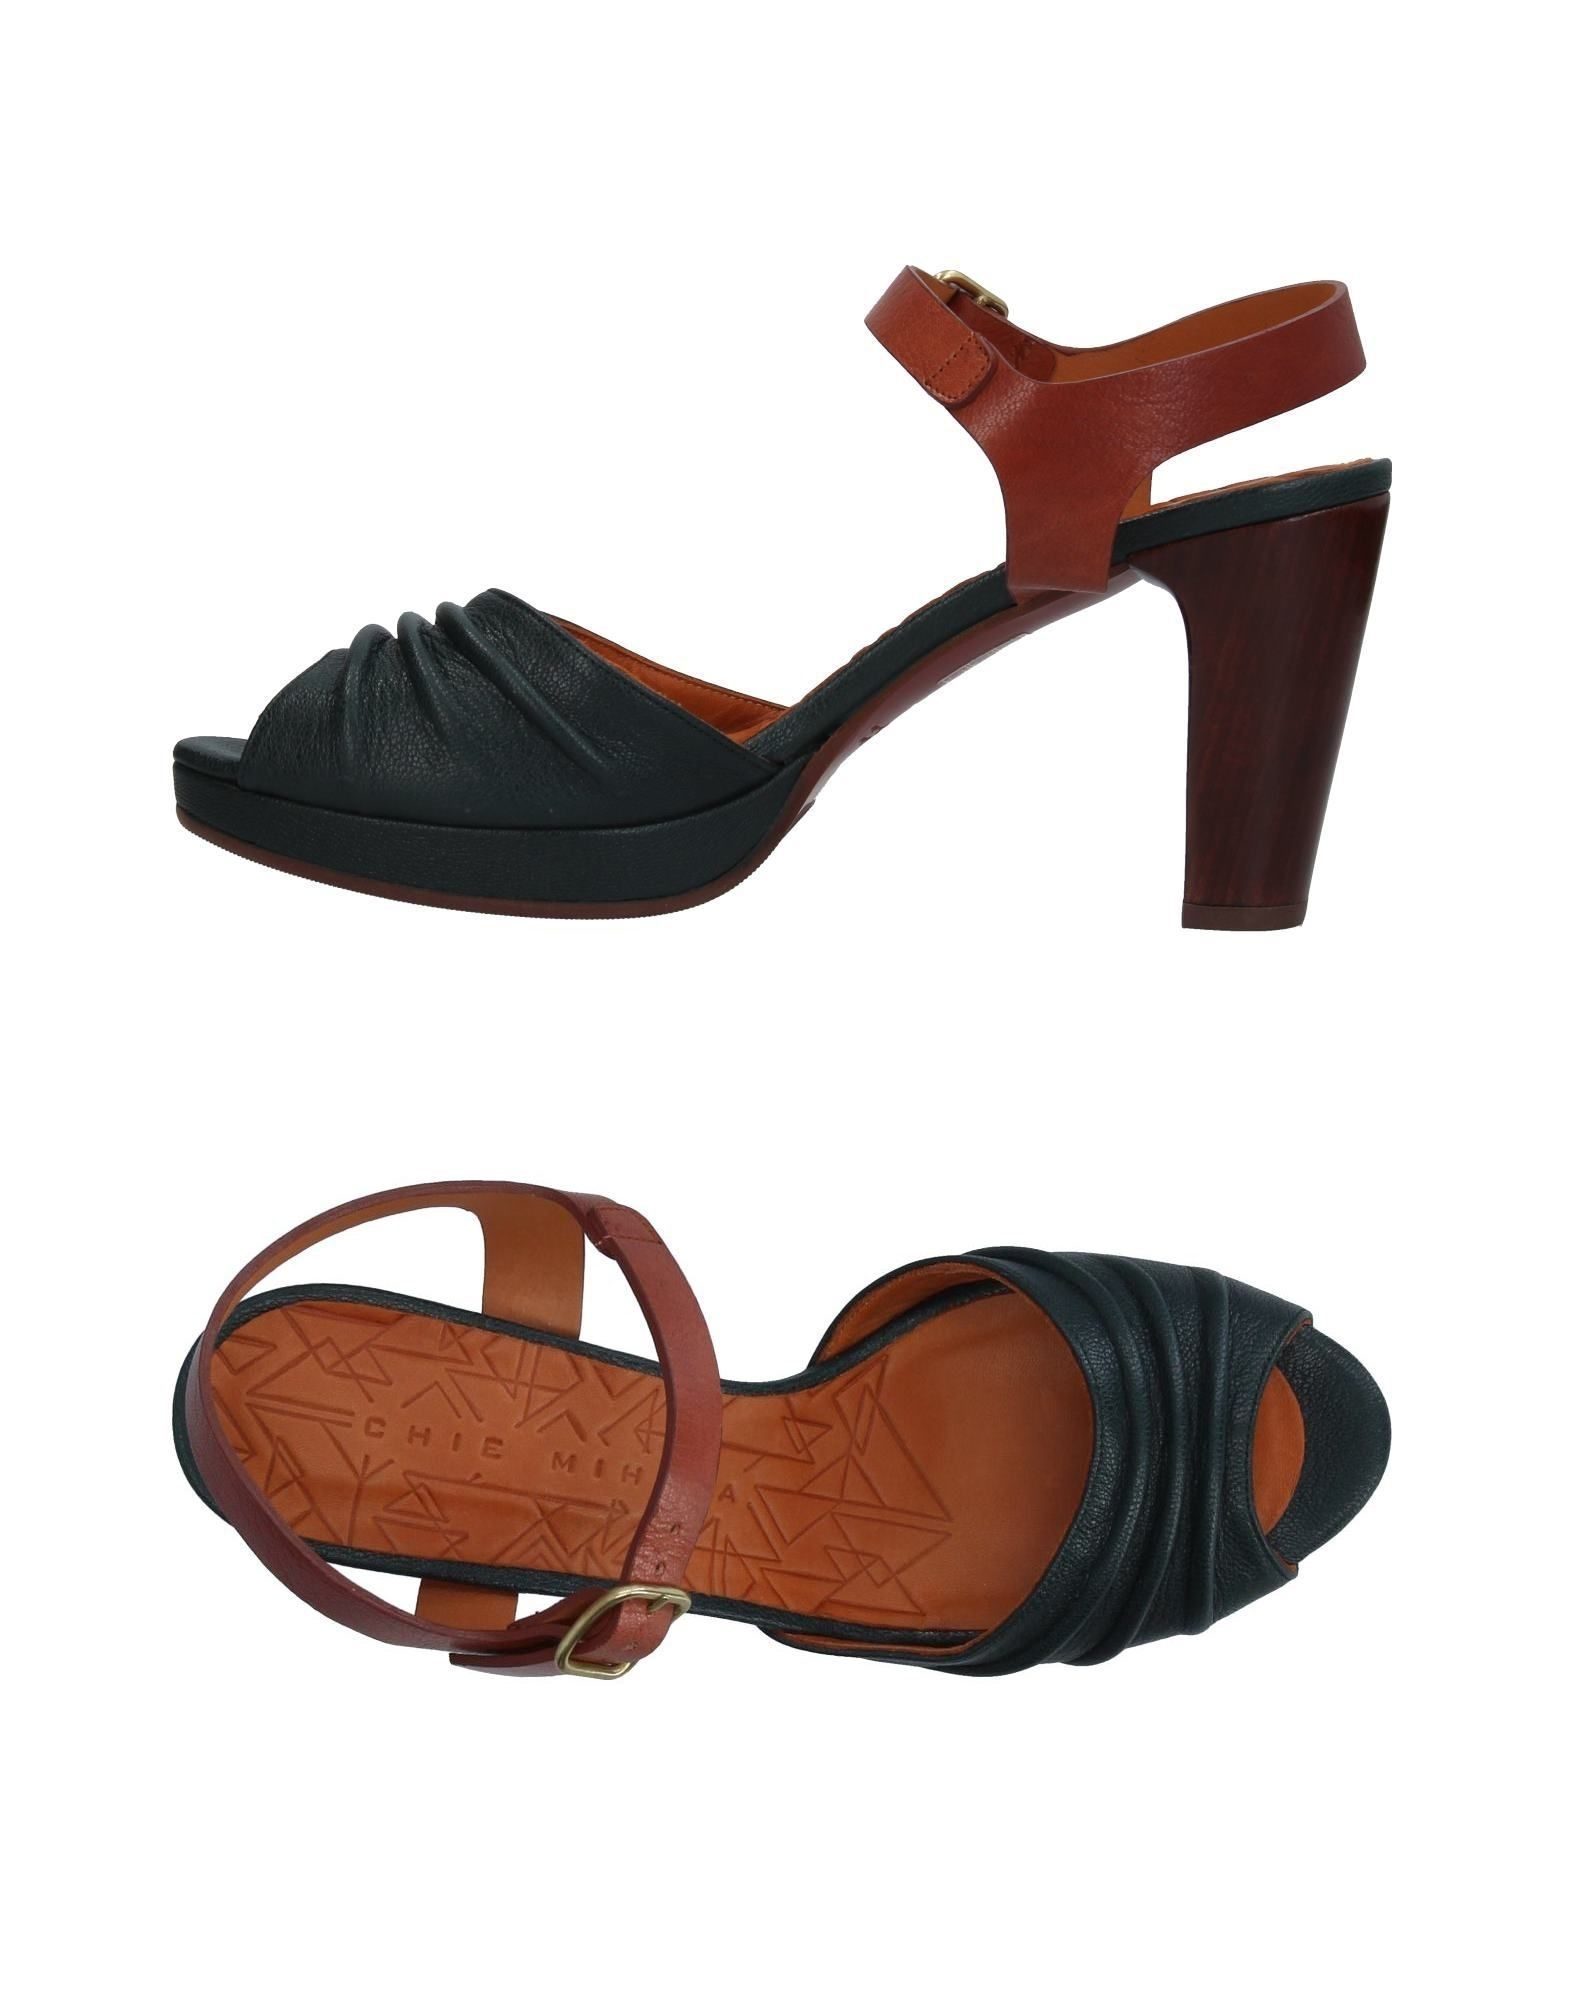 Chie Mihara A?os sandals